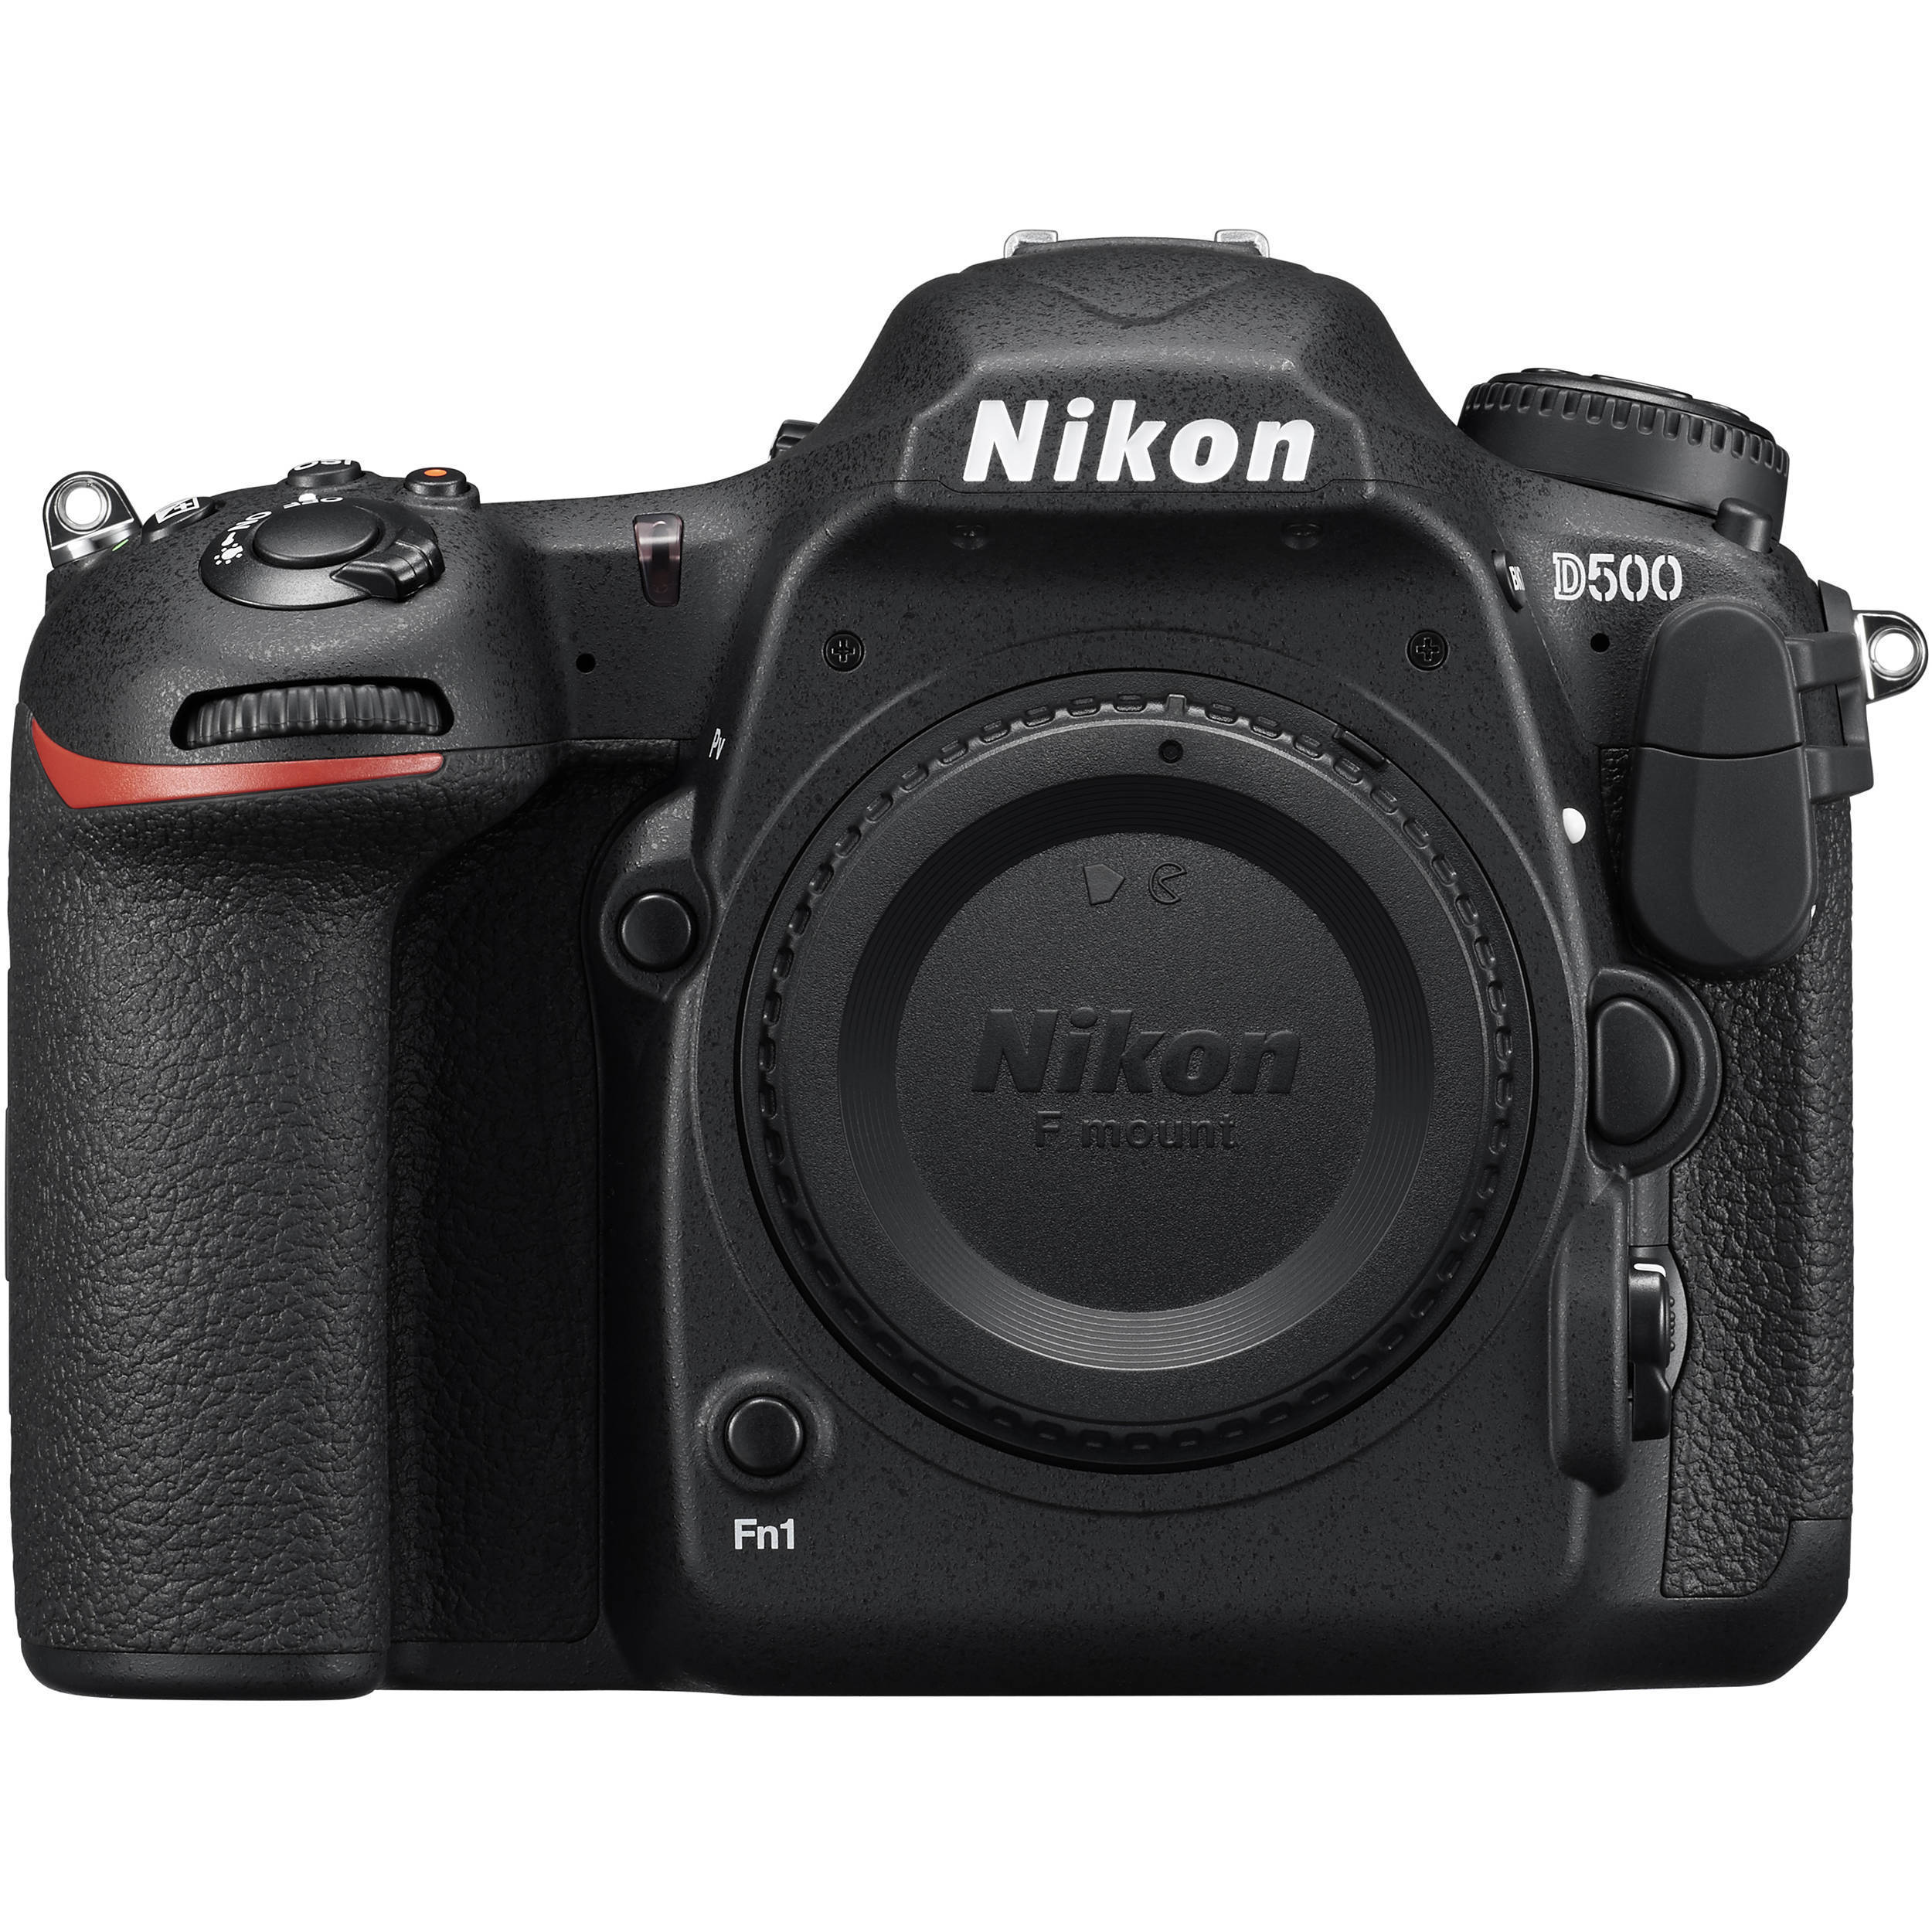 Nikon D500 Dslr Camera (Body Only), Black